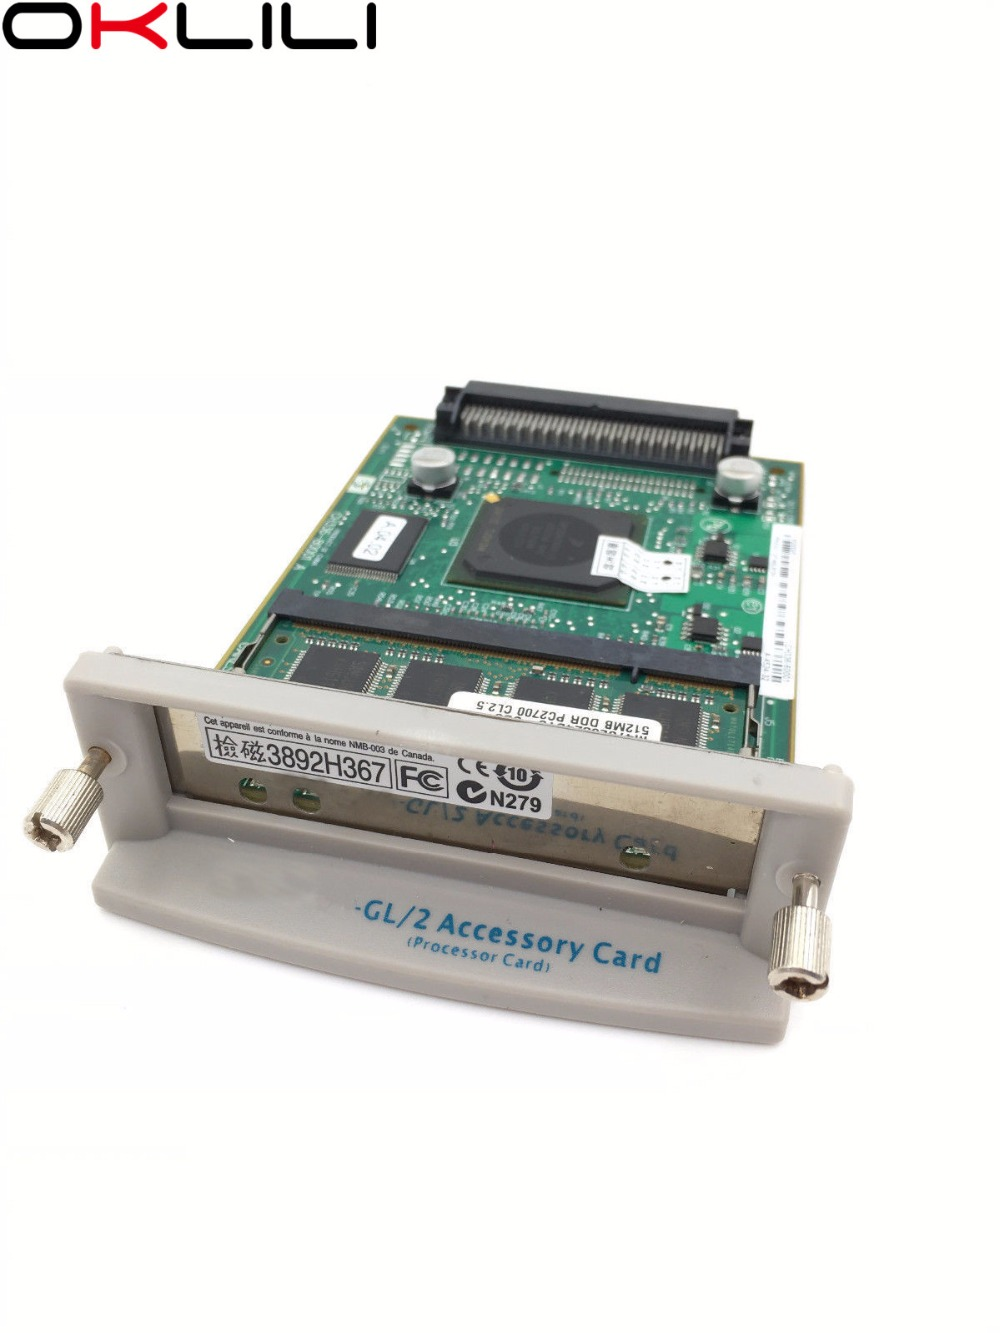 """NEW CH336-60001 CH336-80001 GL/2 Formatter Accessory Card Main Logic Board + 512MB RAM For HP Designjet 5100 510 510ps 24"""" 42"""""""